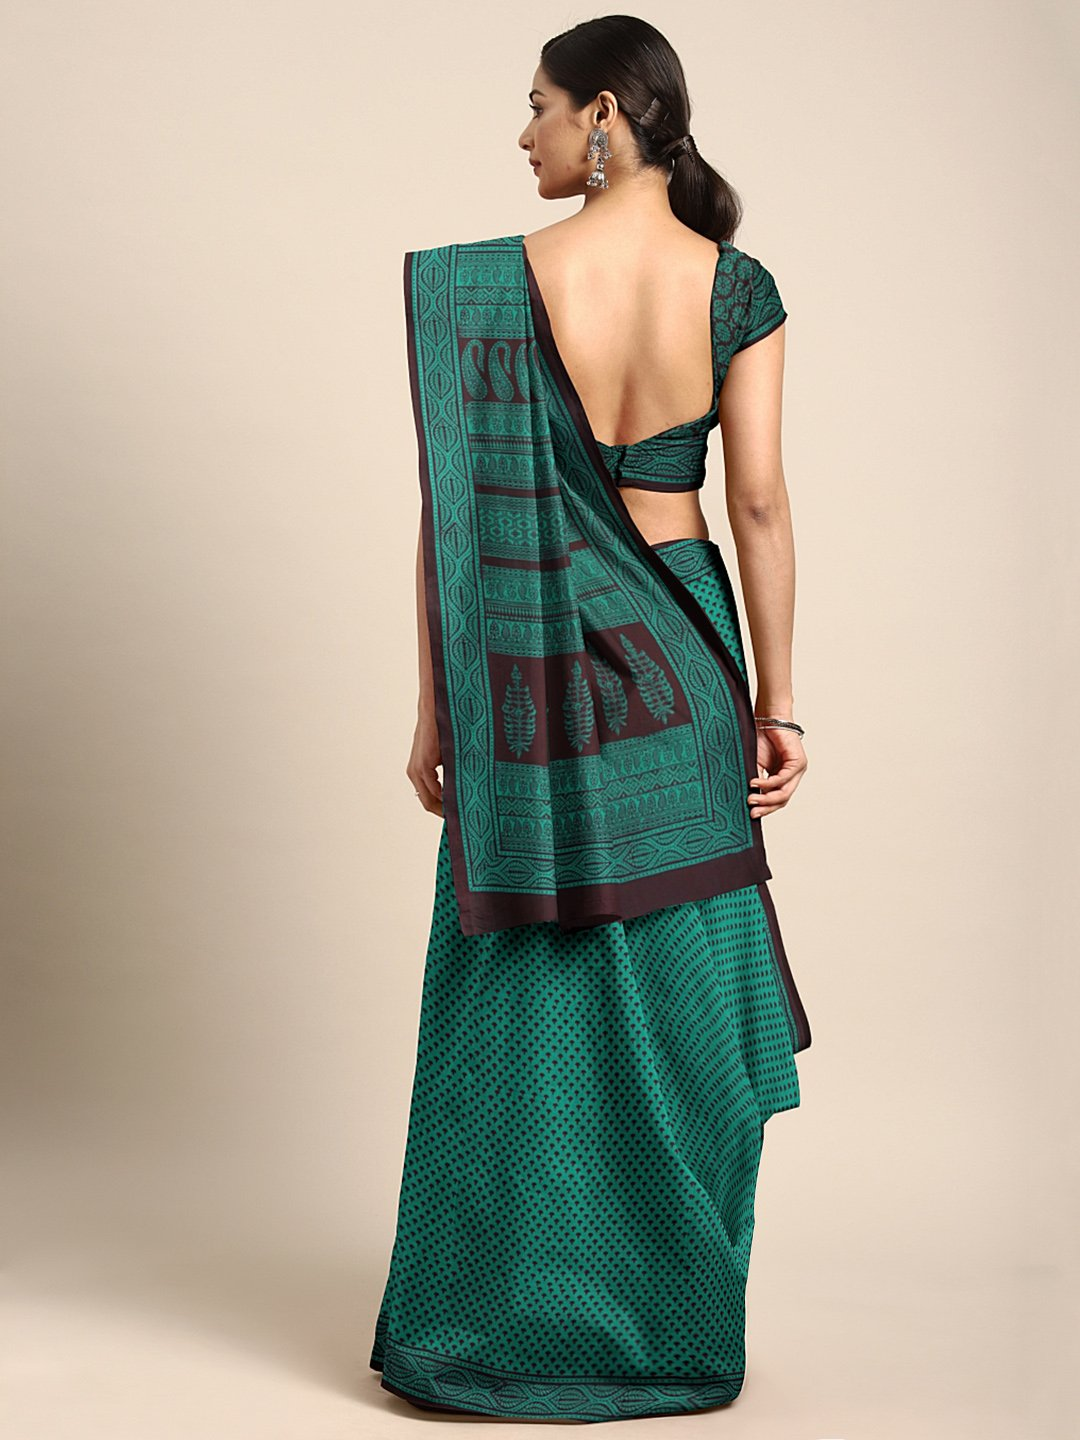 Green Black Pure Cotton Handblock Print Bagh Saree-Saree-Kalakari India-MRBASA0003-Bagh, Cotton, Geographical Indication, Hand Blocks, Hand Crafted, Heritage Prints, Natural Dyes, Sarees, Sustainable Fabrics-[Linen,Ethnic,wear,Fashionista,Handloom,Handicraft,Indigo,blockprint,block,print,Cotton,Chanderi,Blue, latest,classy,party,bollywood,trendy,summer,style,traditional,formal,elegant,unique,style,hand,block,print, dabu,booti,gift,present,glamorous,affordable,collectible,Sari,Saree,printed, holi